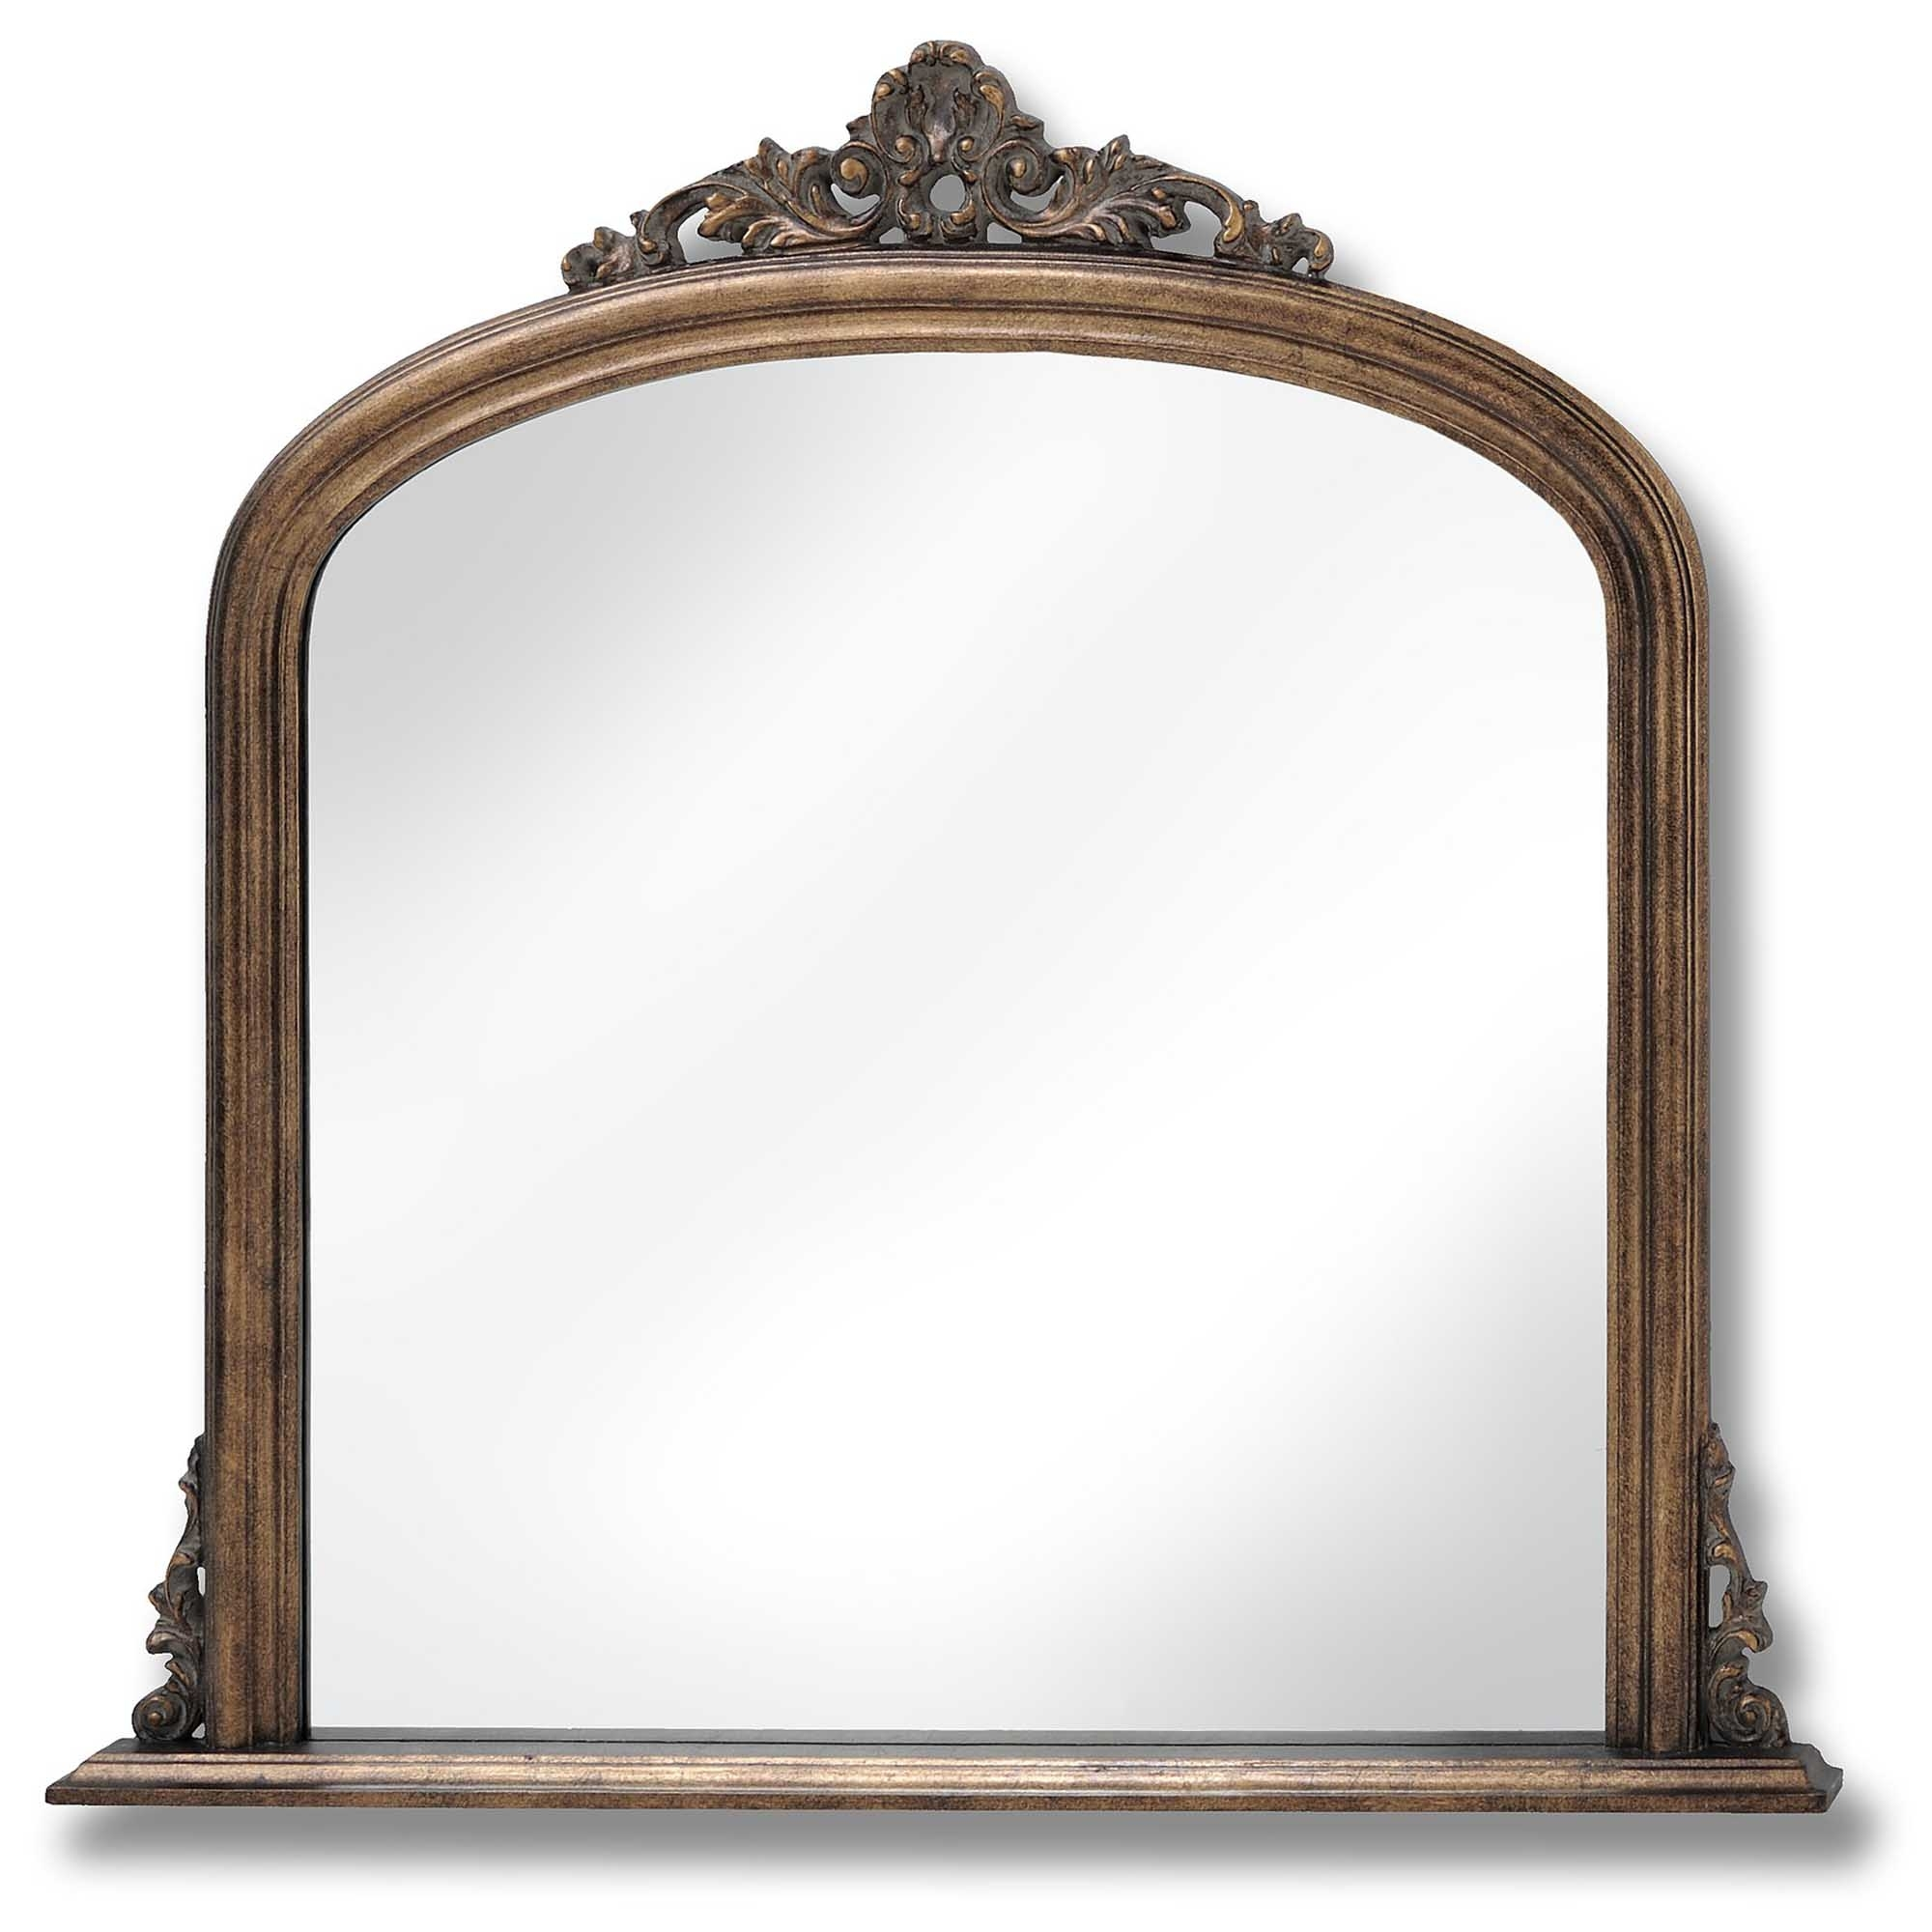 Antique French Style Gold Overmantel Mirror Homesdirect365